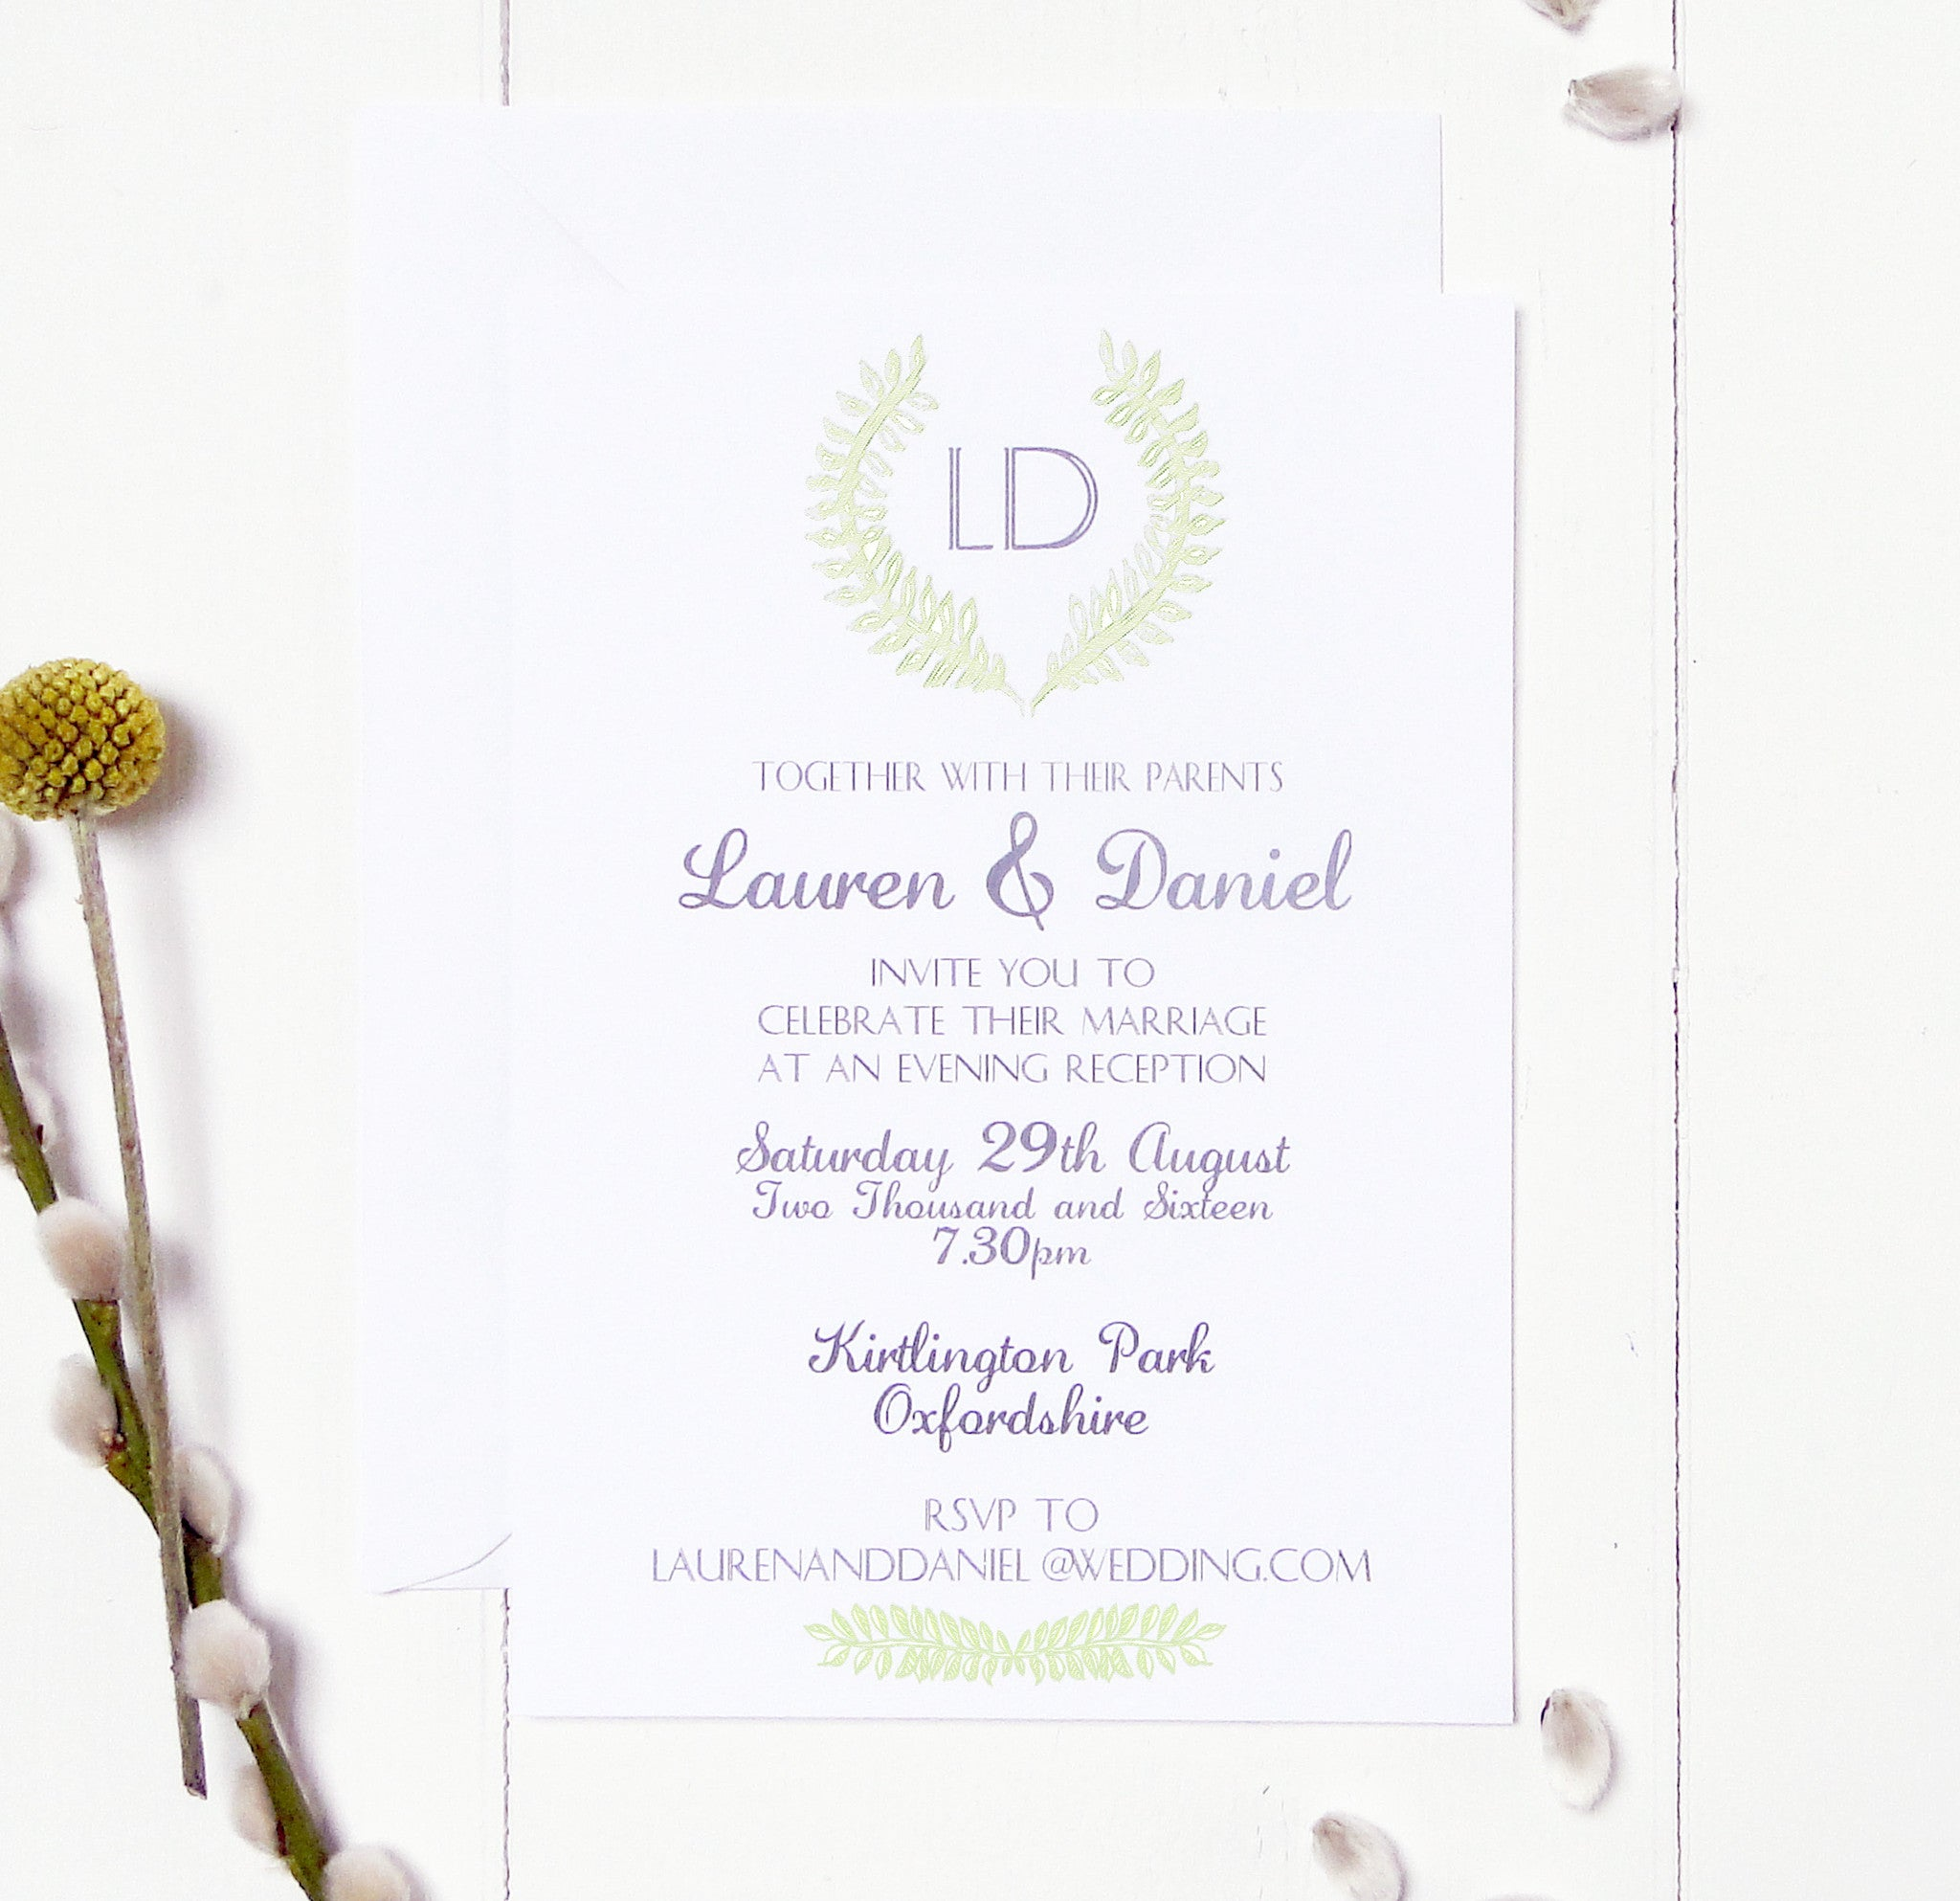 Grecian Pastels Evening Wedding Reception Invitation by Peardrop Avenue